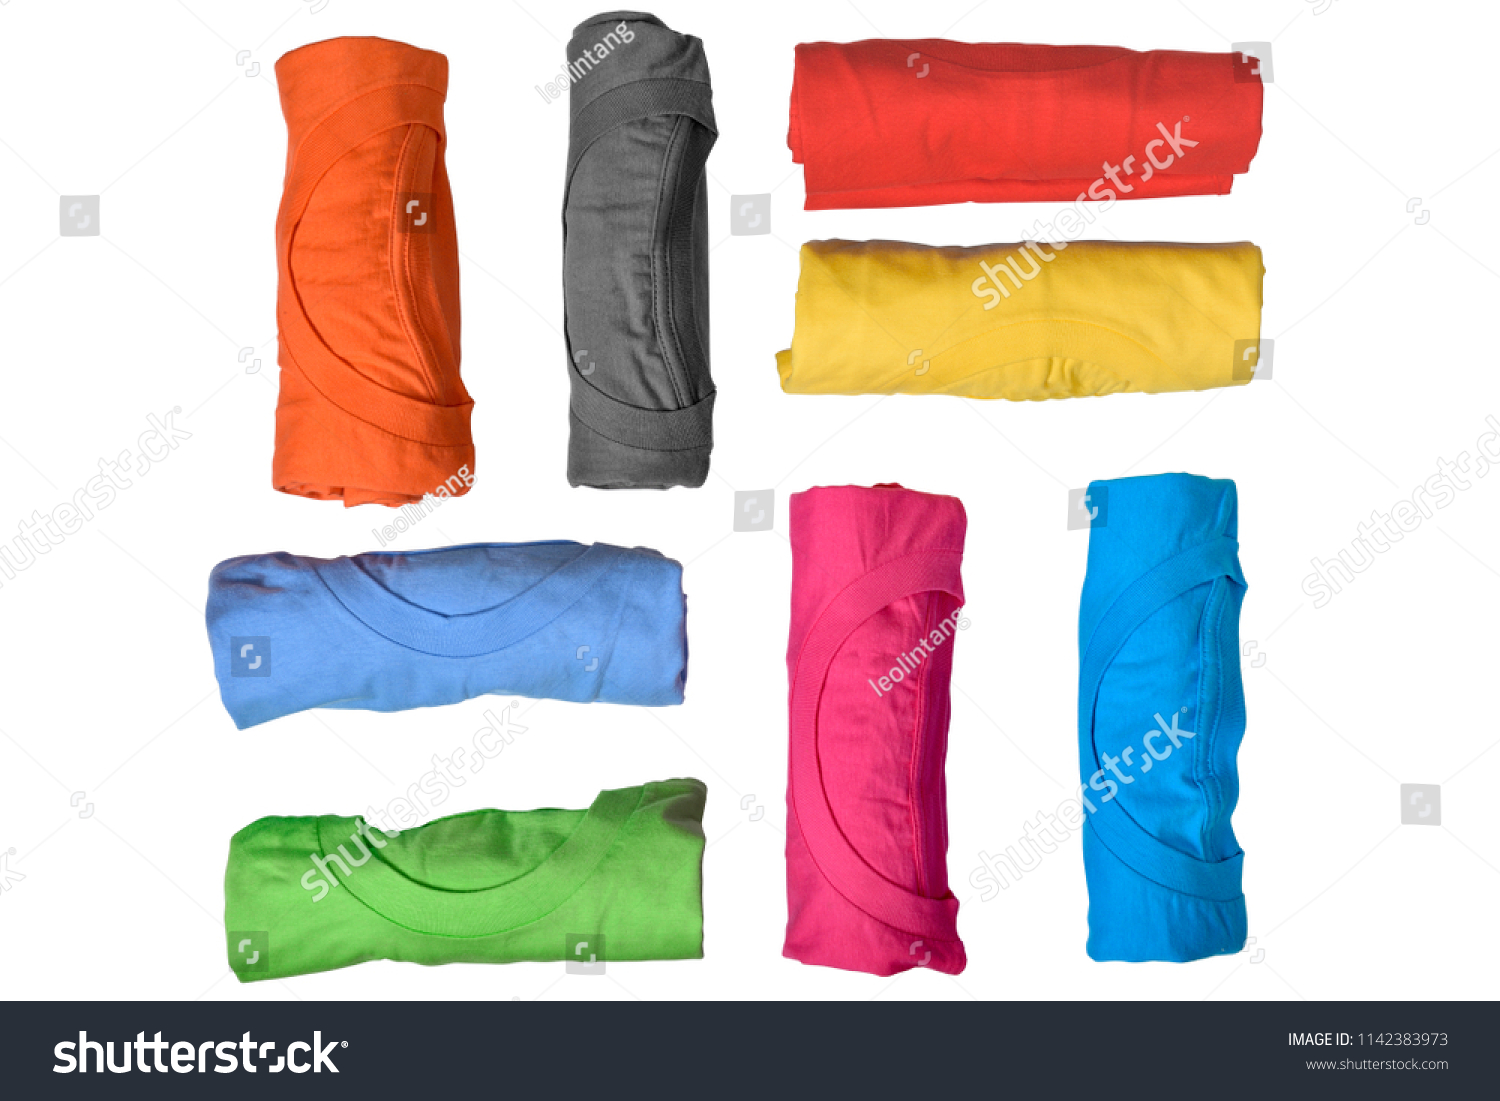 Set of colorful rolled clothes isolated over white background #1142383973